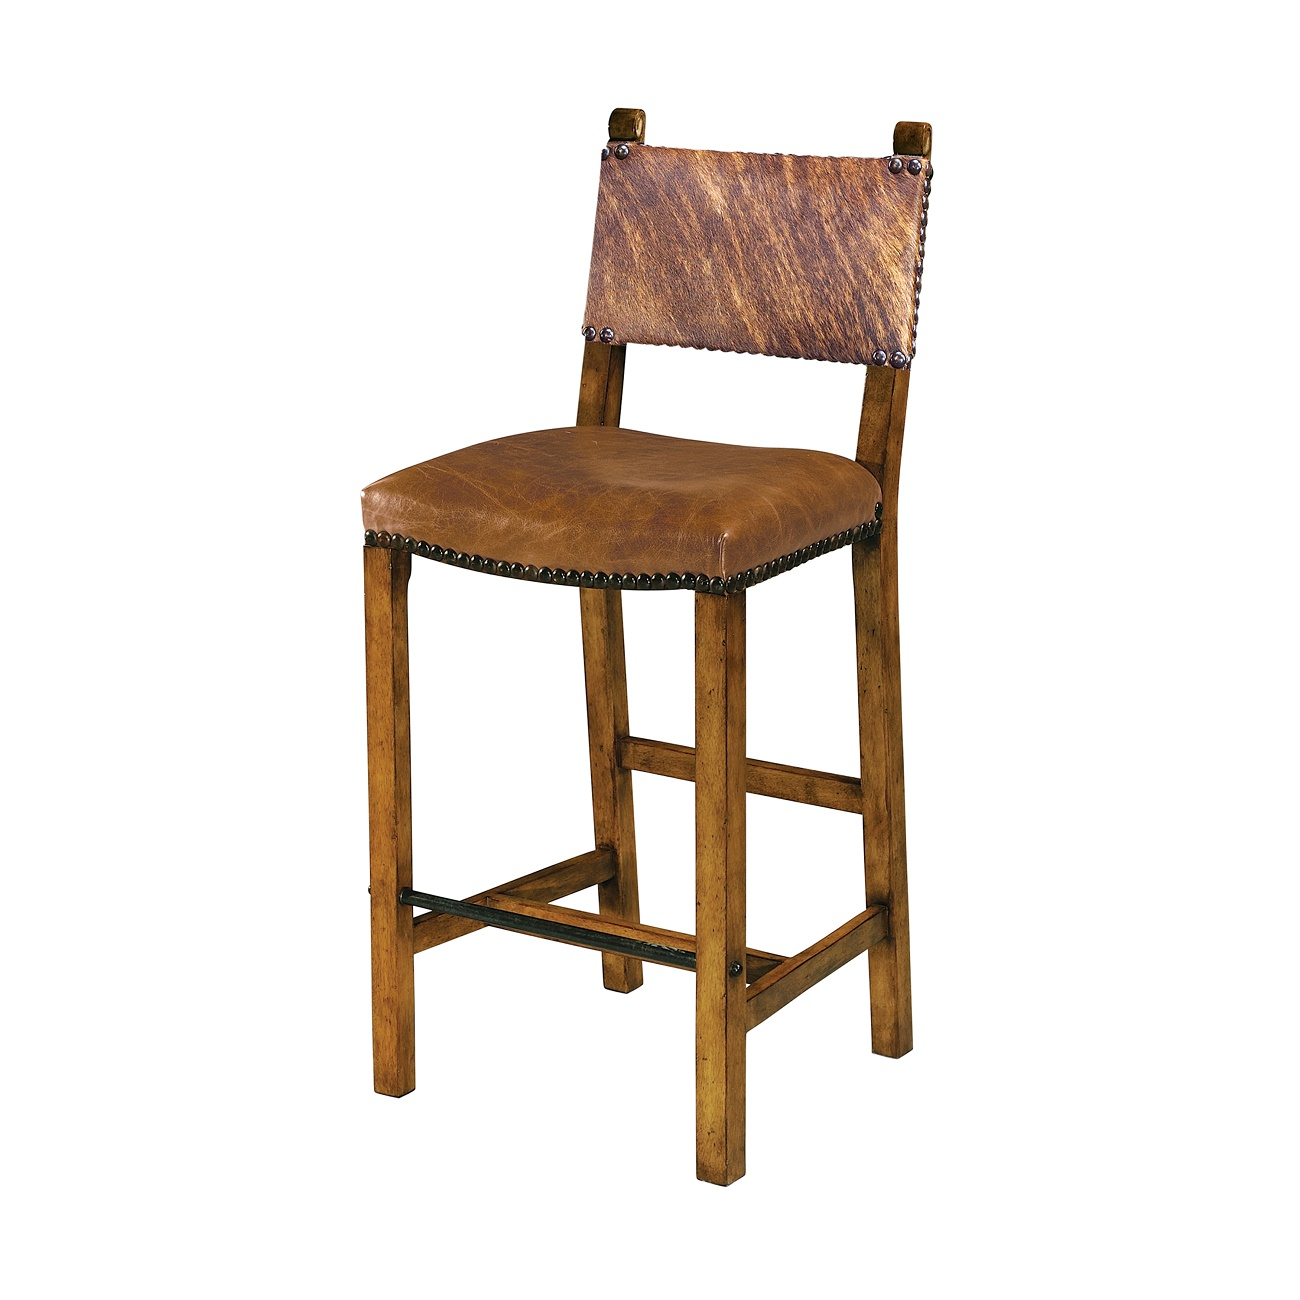 A Director Bar Chair Bar Stool theodore alexander 4200 125